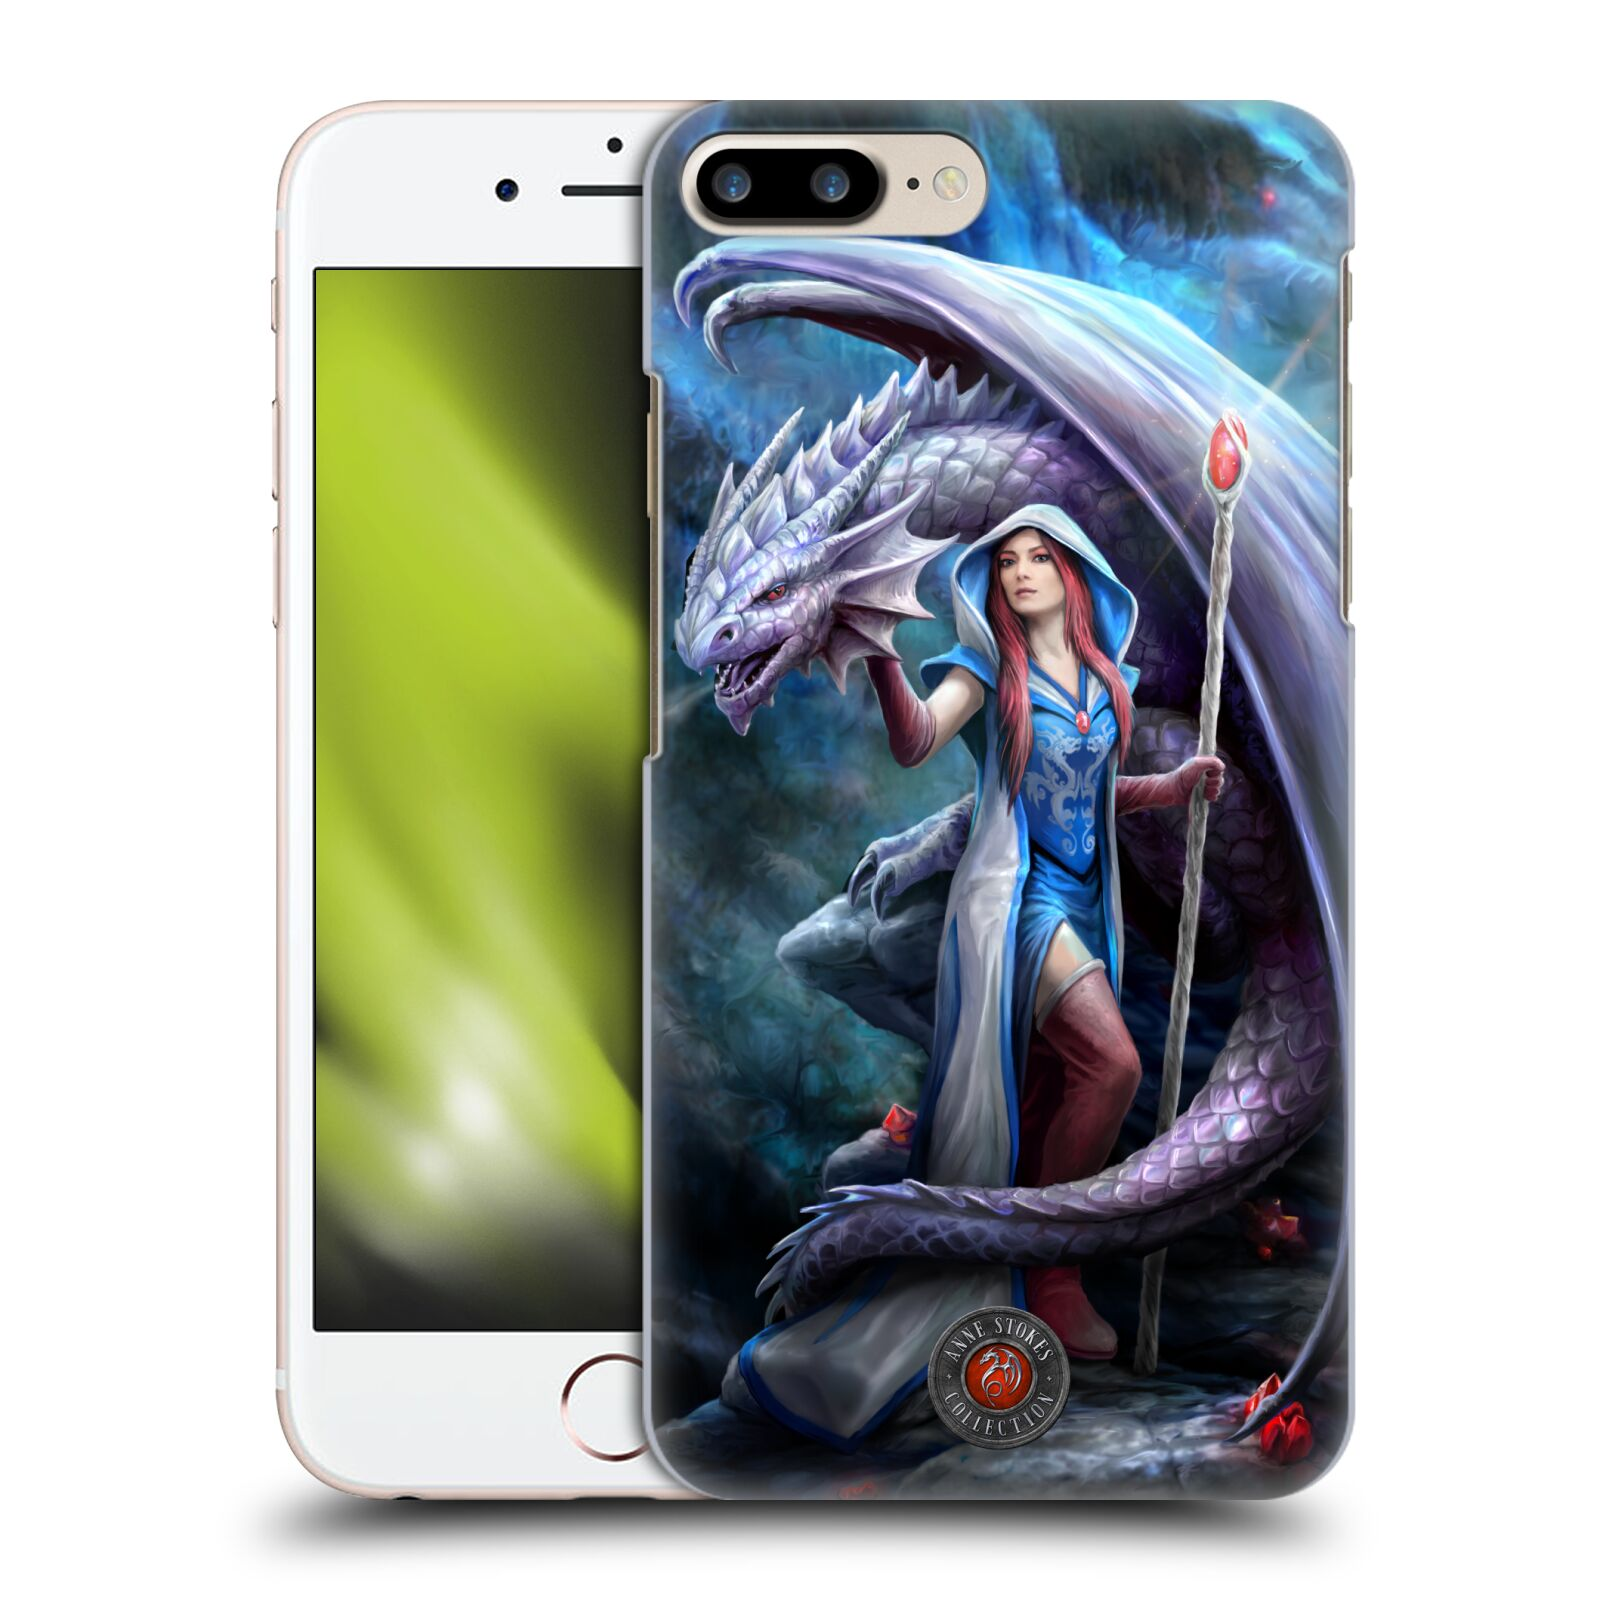 Official Anne Stokes Dragon Friendship 2 Mage Back Case for Apple iPhone 7 Plus / iPhone 8 Plus